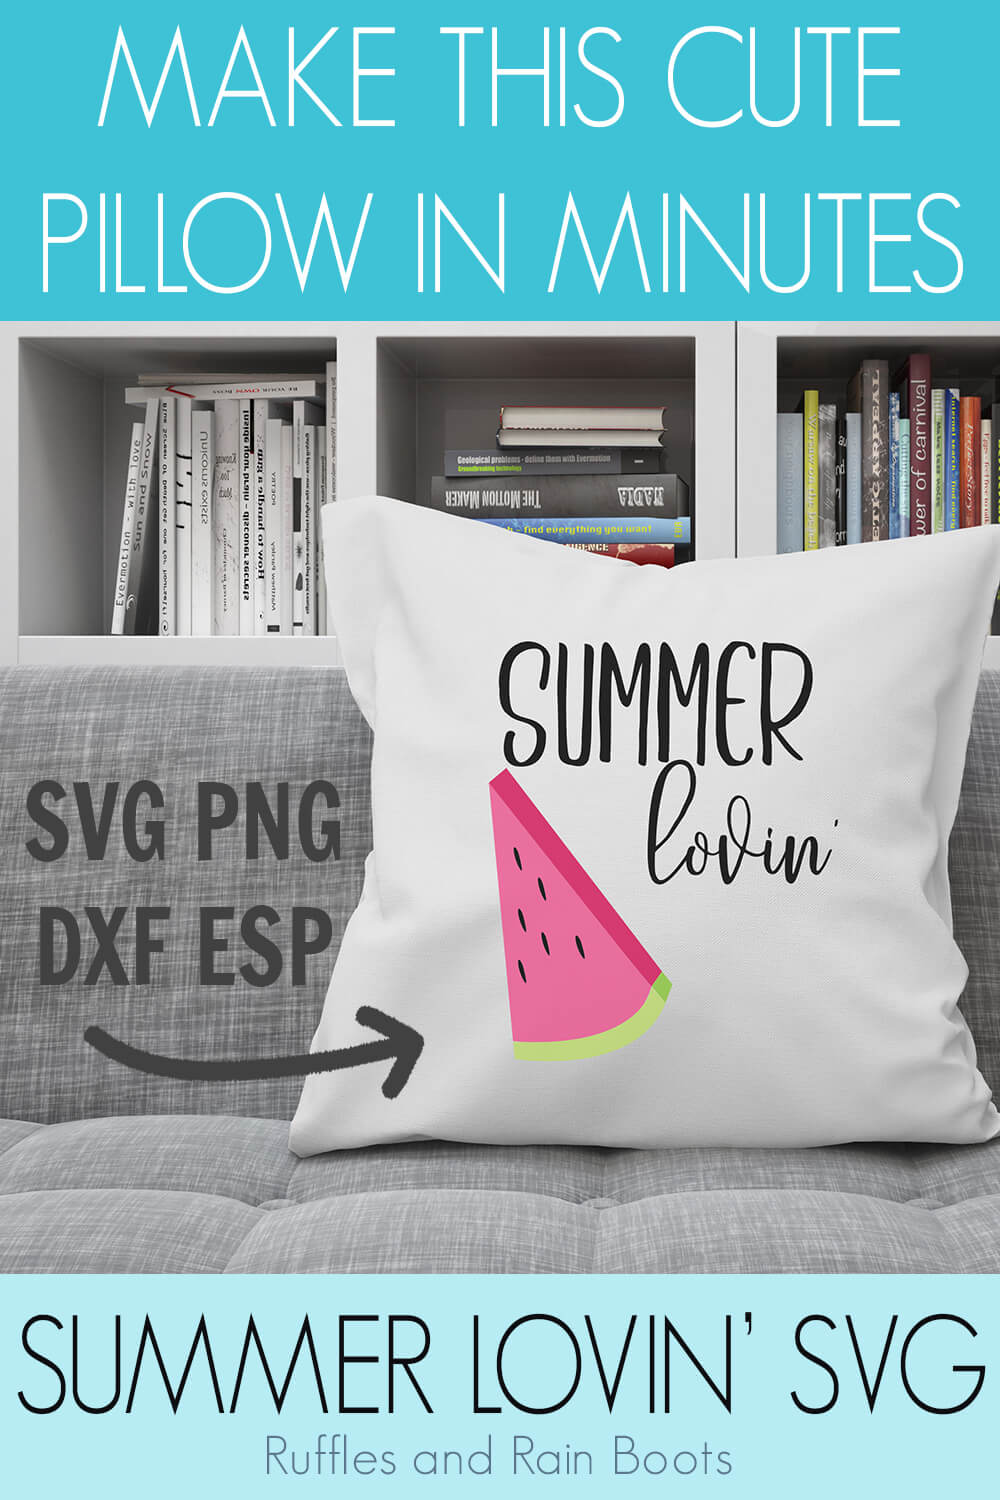 Free Summer Lovin' summer SVG with Watermelon Slice on Pillow sitting on a grey couch in front of a bookcase with text which reads make this cute pillow in minutes SVG PNG DXF ESP Summer Lovin' SVG